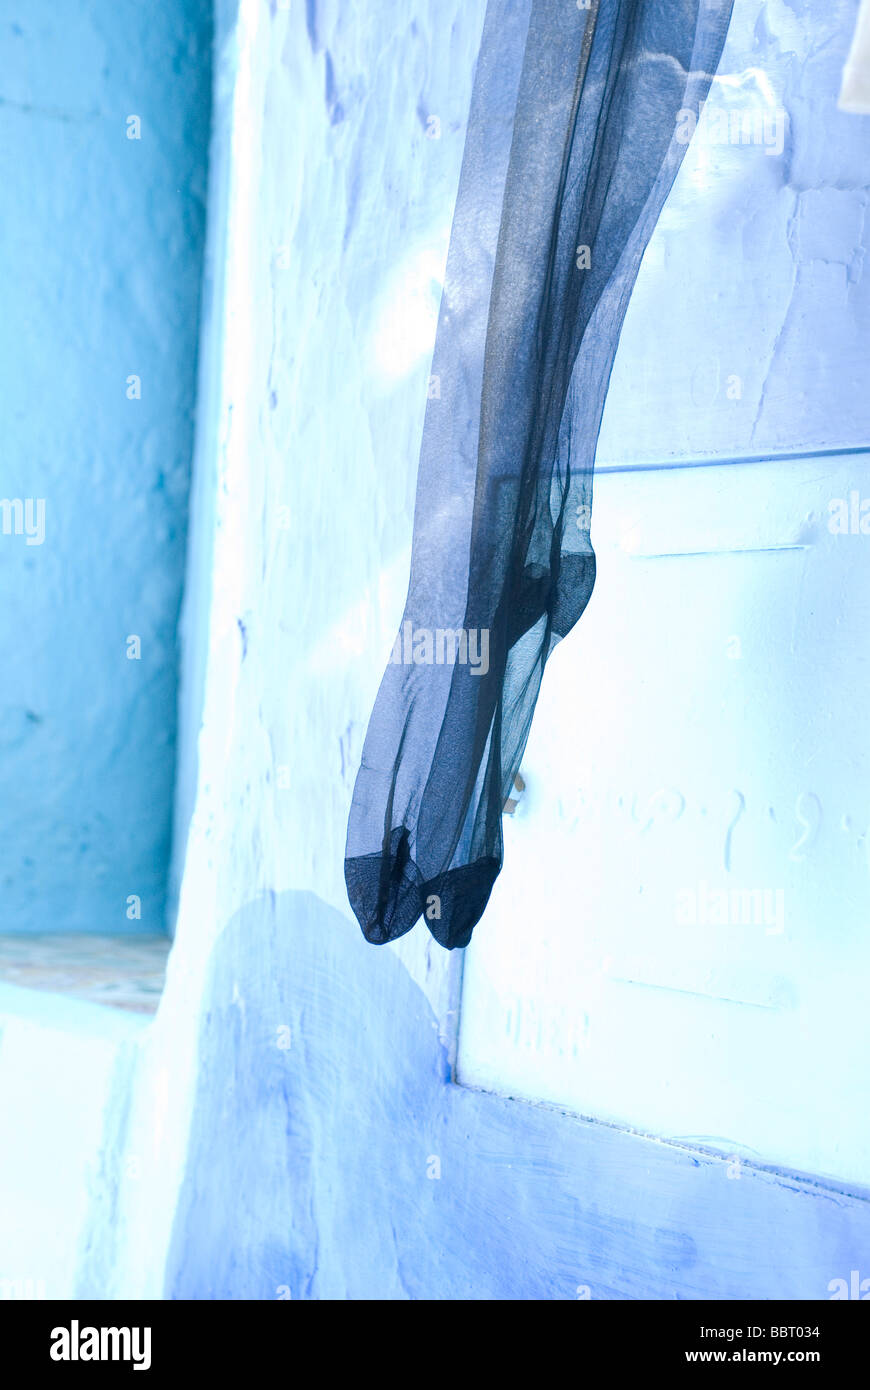 Panty details on blue street. Chefchaouen Chaouen Morocco Stock Photo